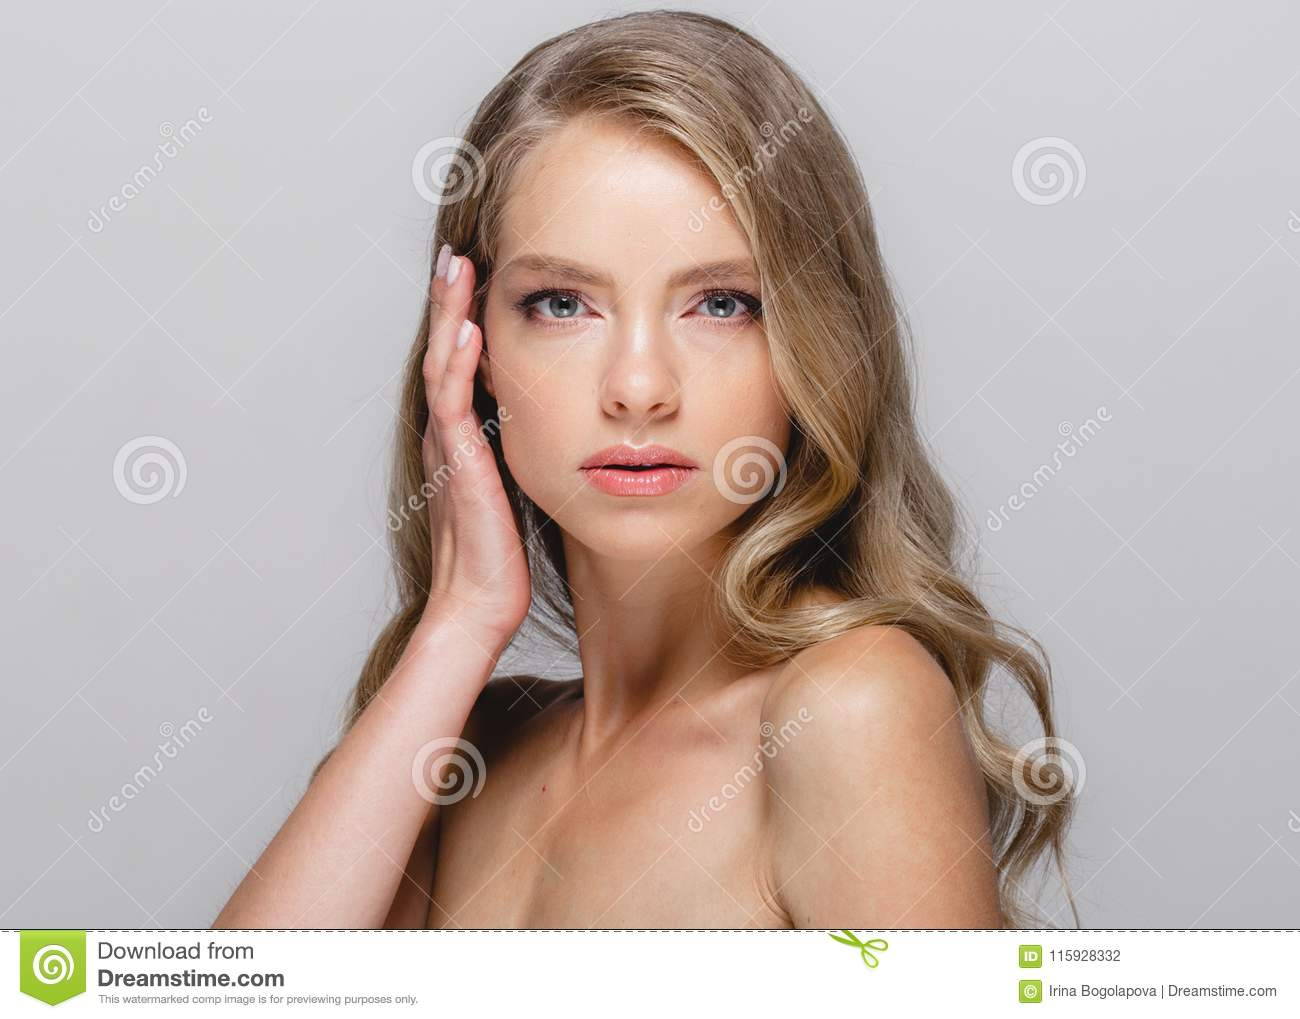 Women Beauty Face Beautiful Blonde Woman Beauty Model Girl With Stock Photo Image Of Healthy Earrings 115928332